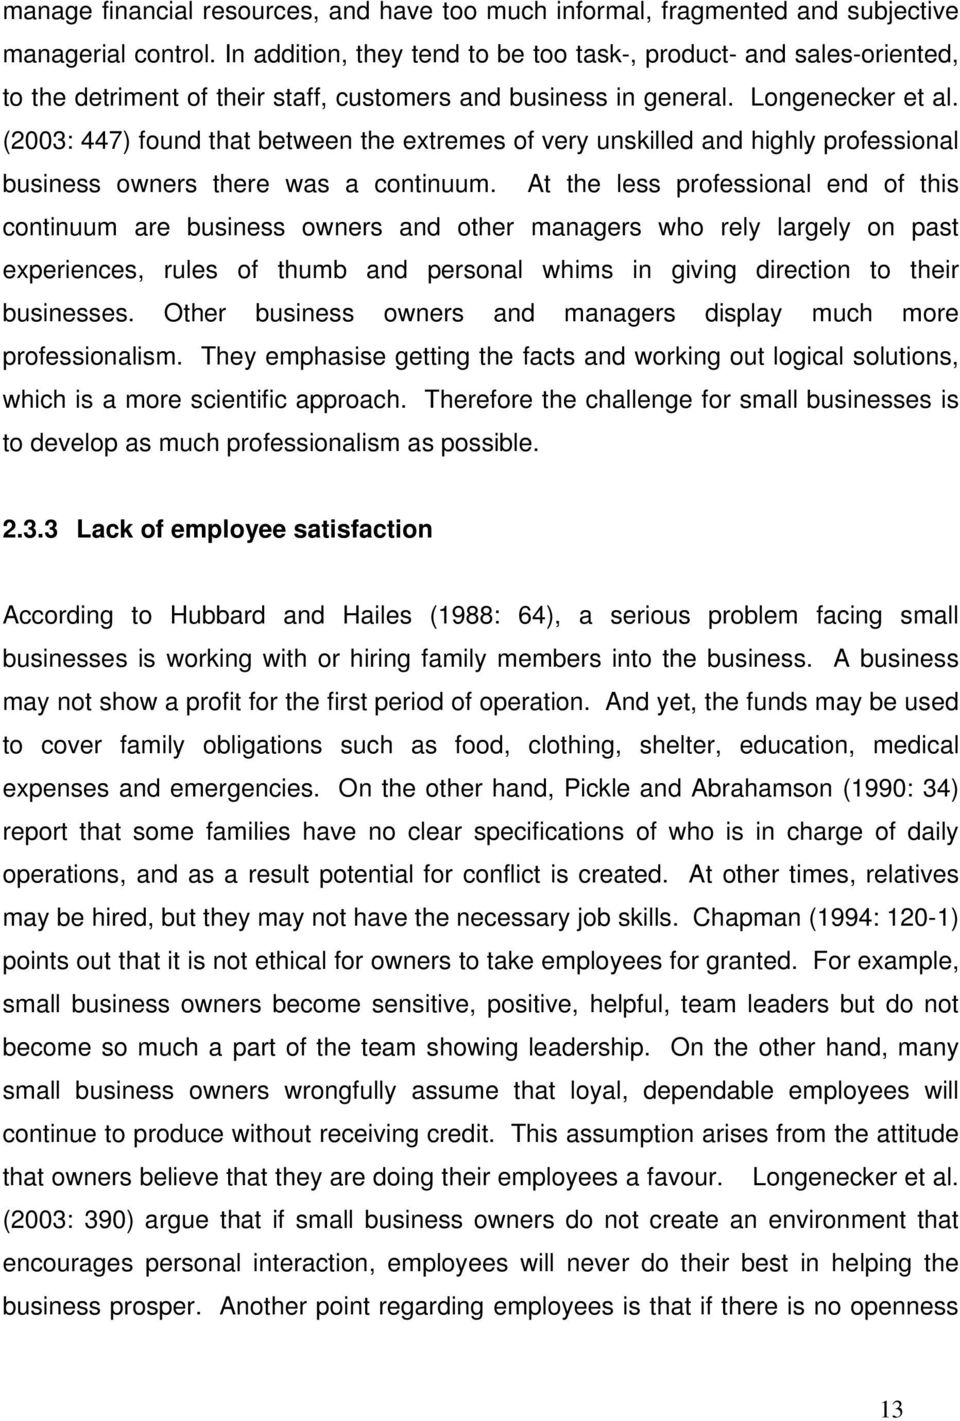 (2003: 447) found that between the extremes of very unskilled and highly professional business owners there was a continuum.